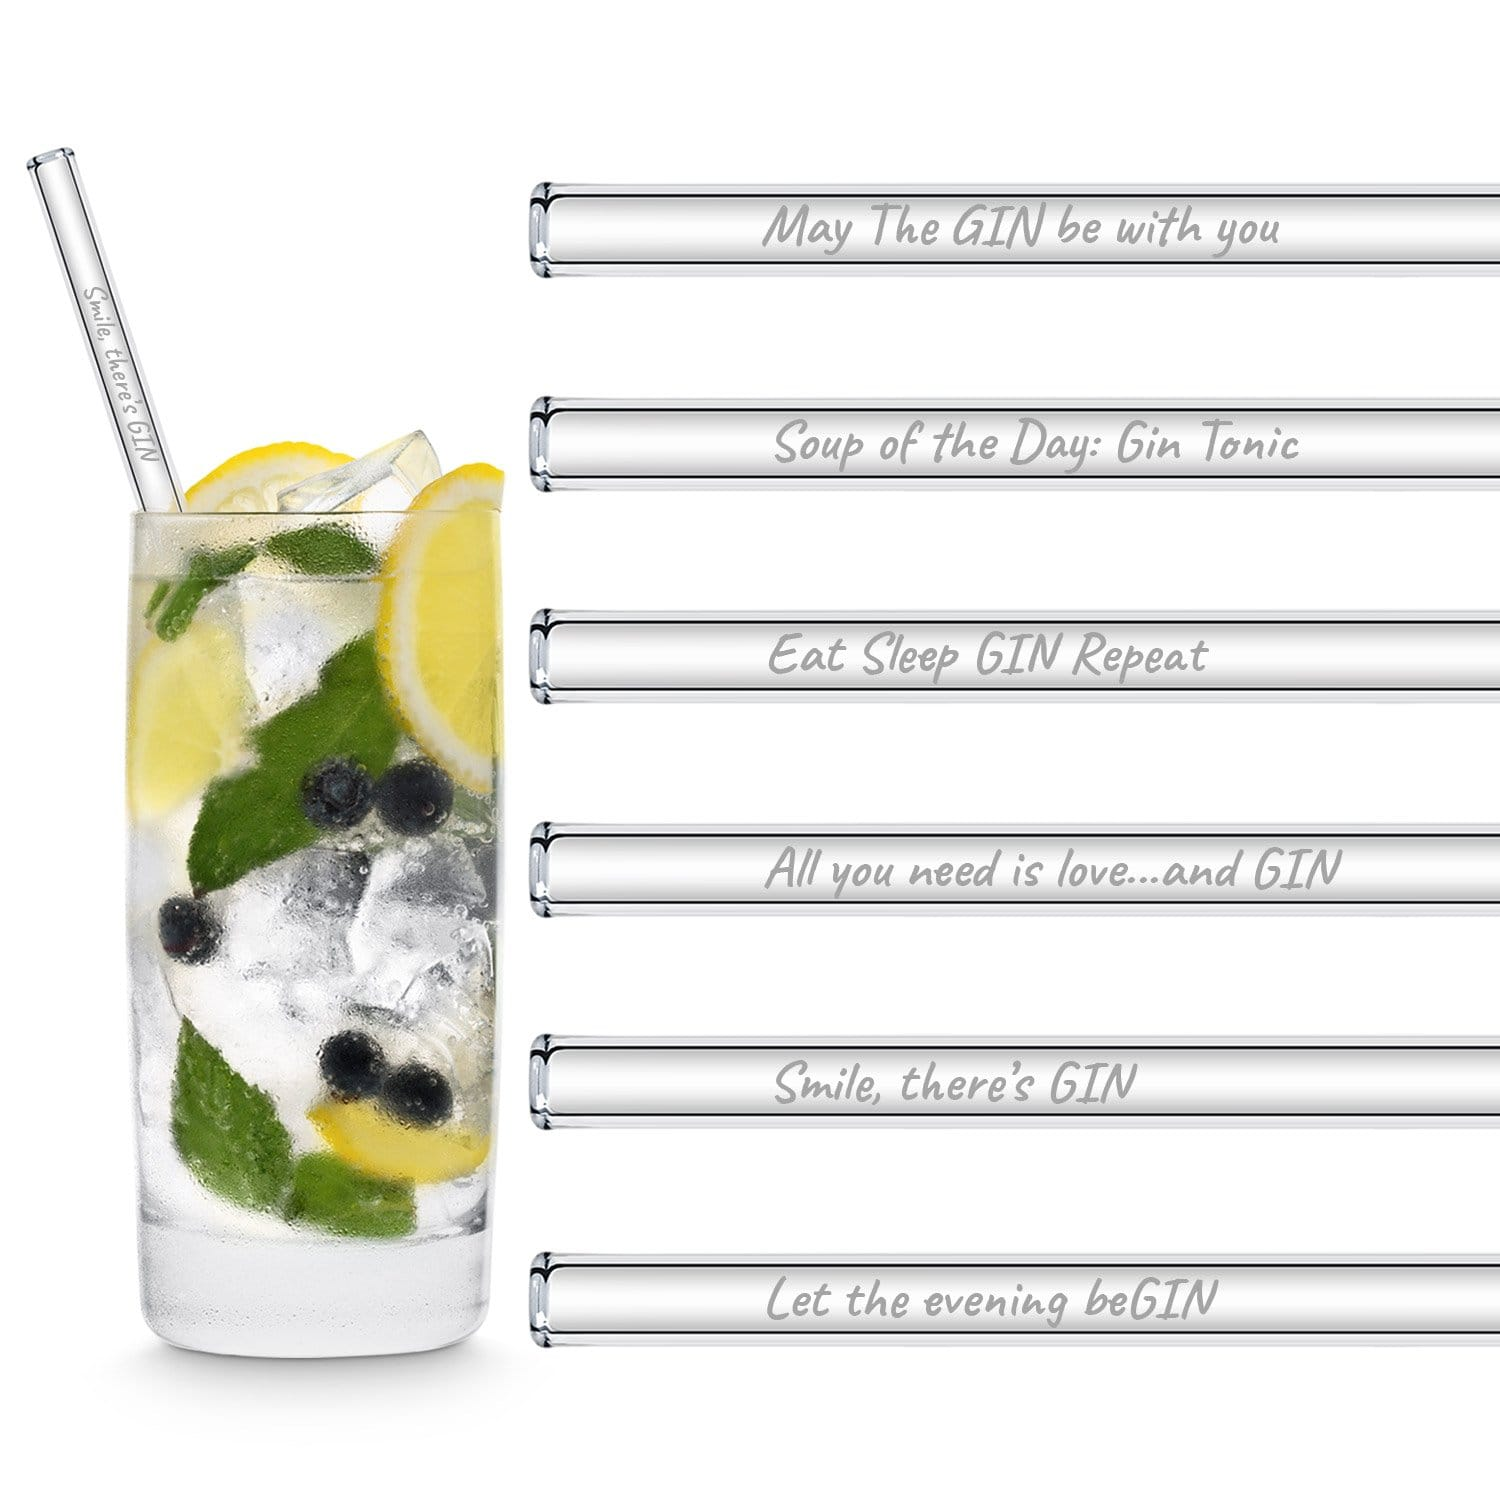 Glass Straws with Gin sayings for gin tonic cocktail recipes Reusable Colour straws plastic straw alternatives gift for mum